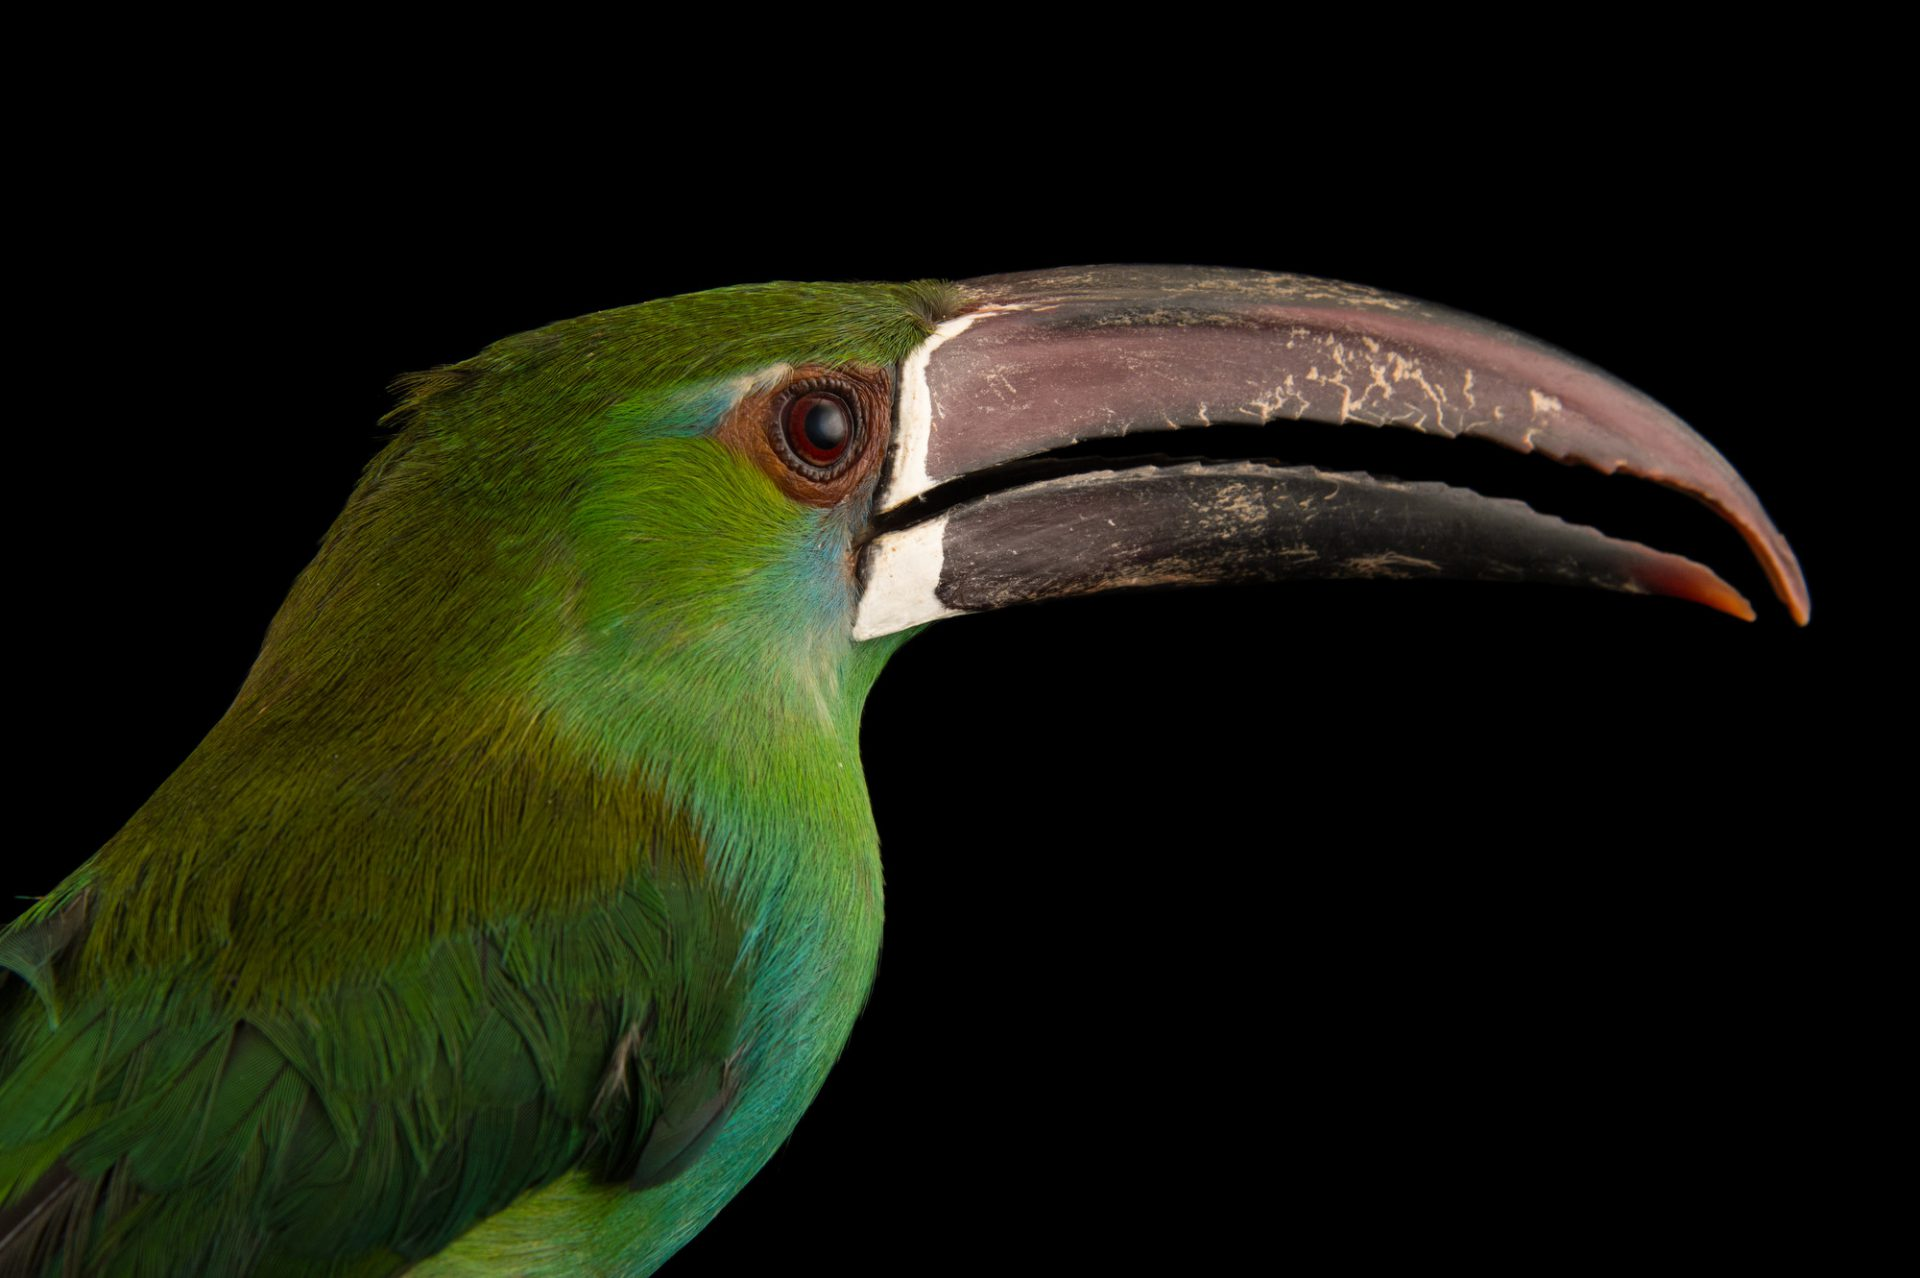 Picture of a crimson-rumped toucanet (Aulacorhynchus haematopygus) at the National Aviary breeding center in Palmar, Colombia.